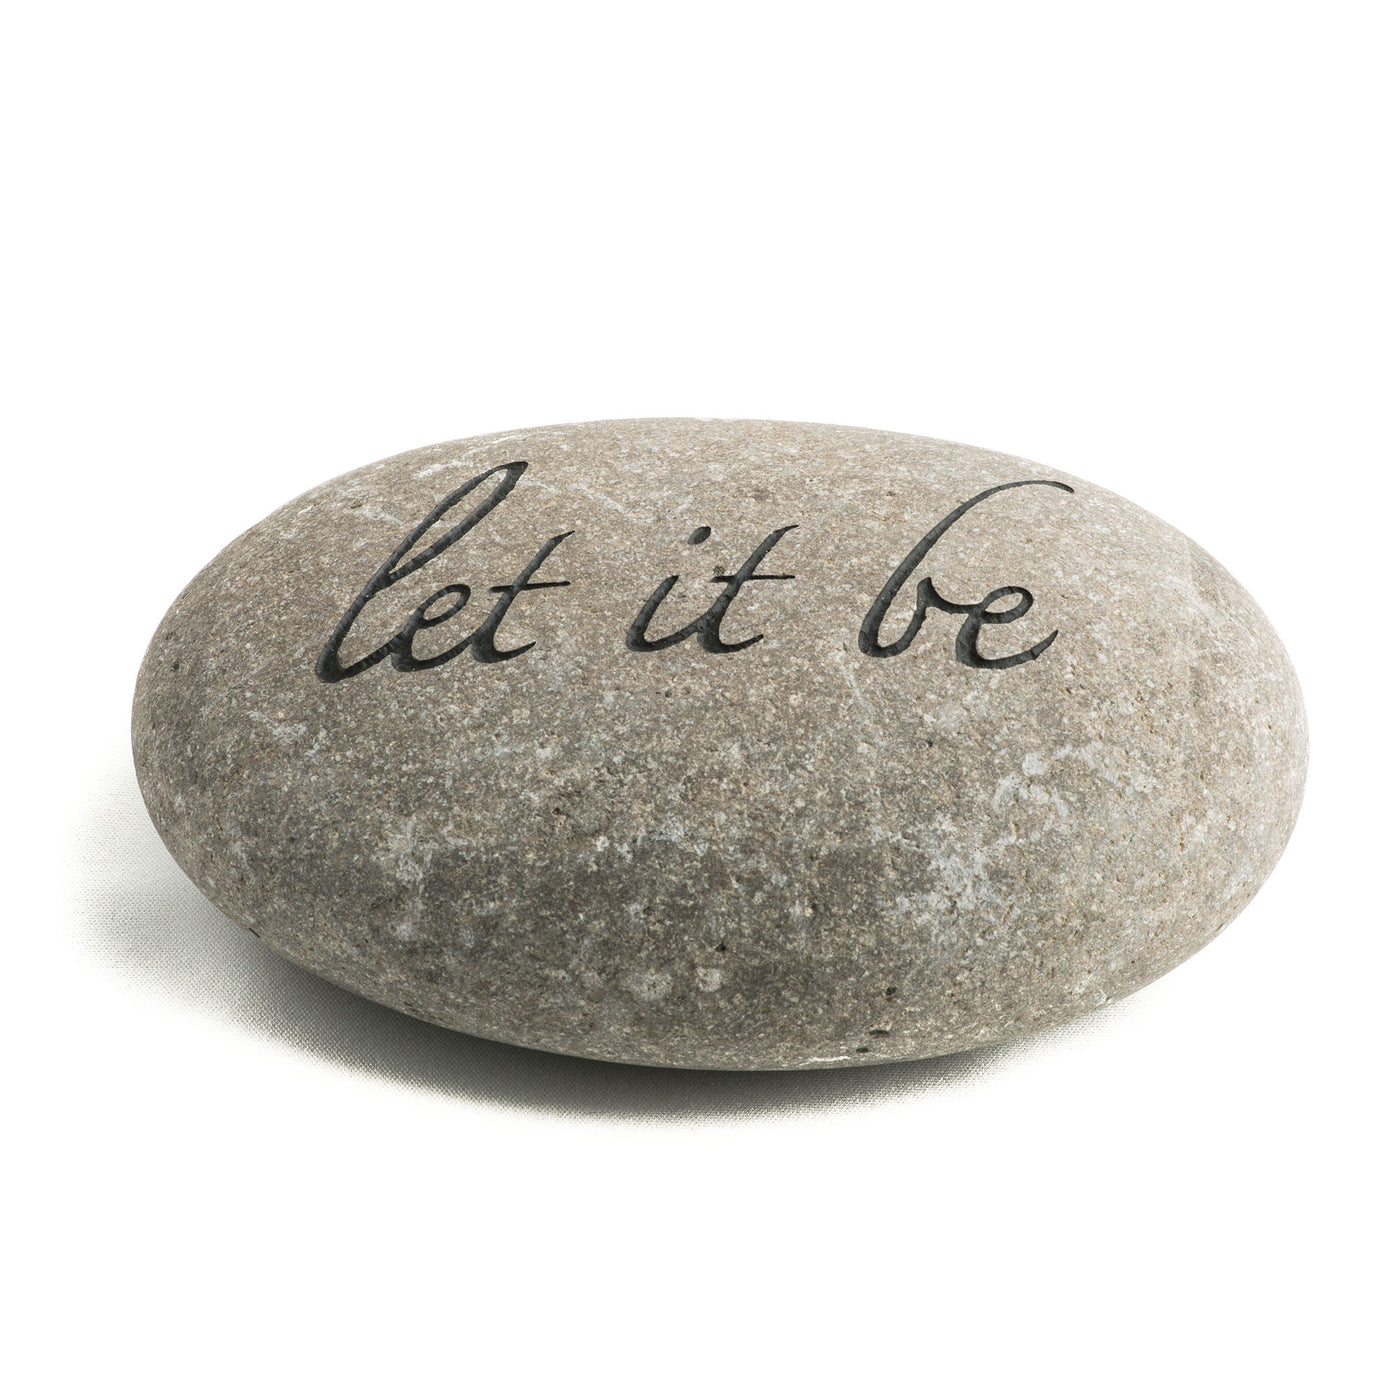 Let it be Messenger Stone